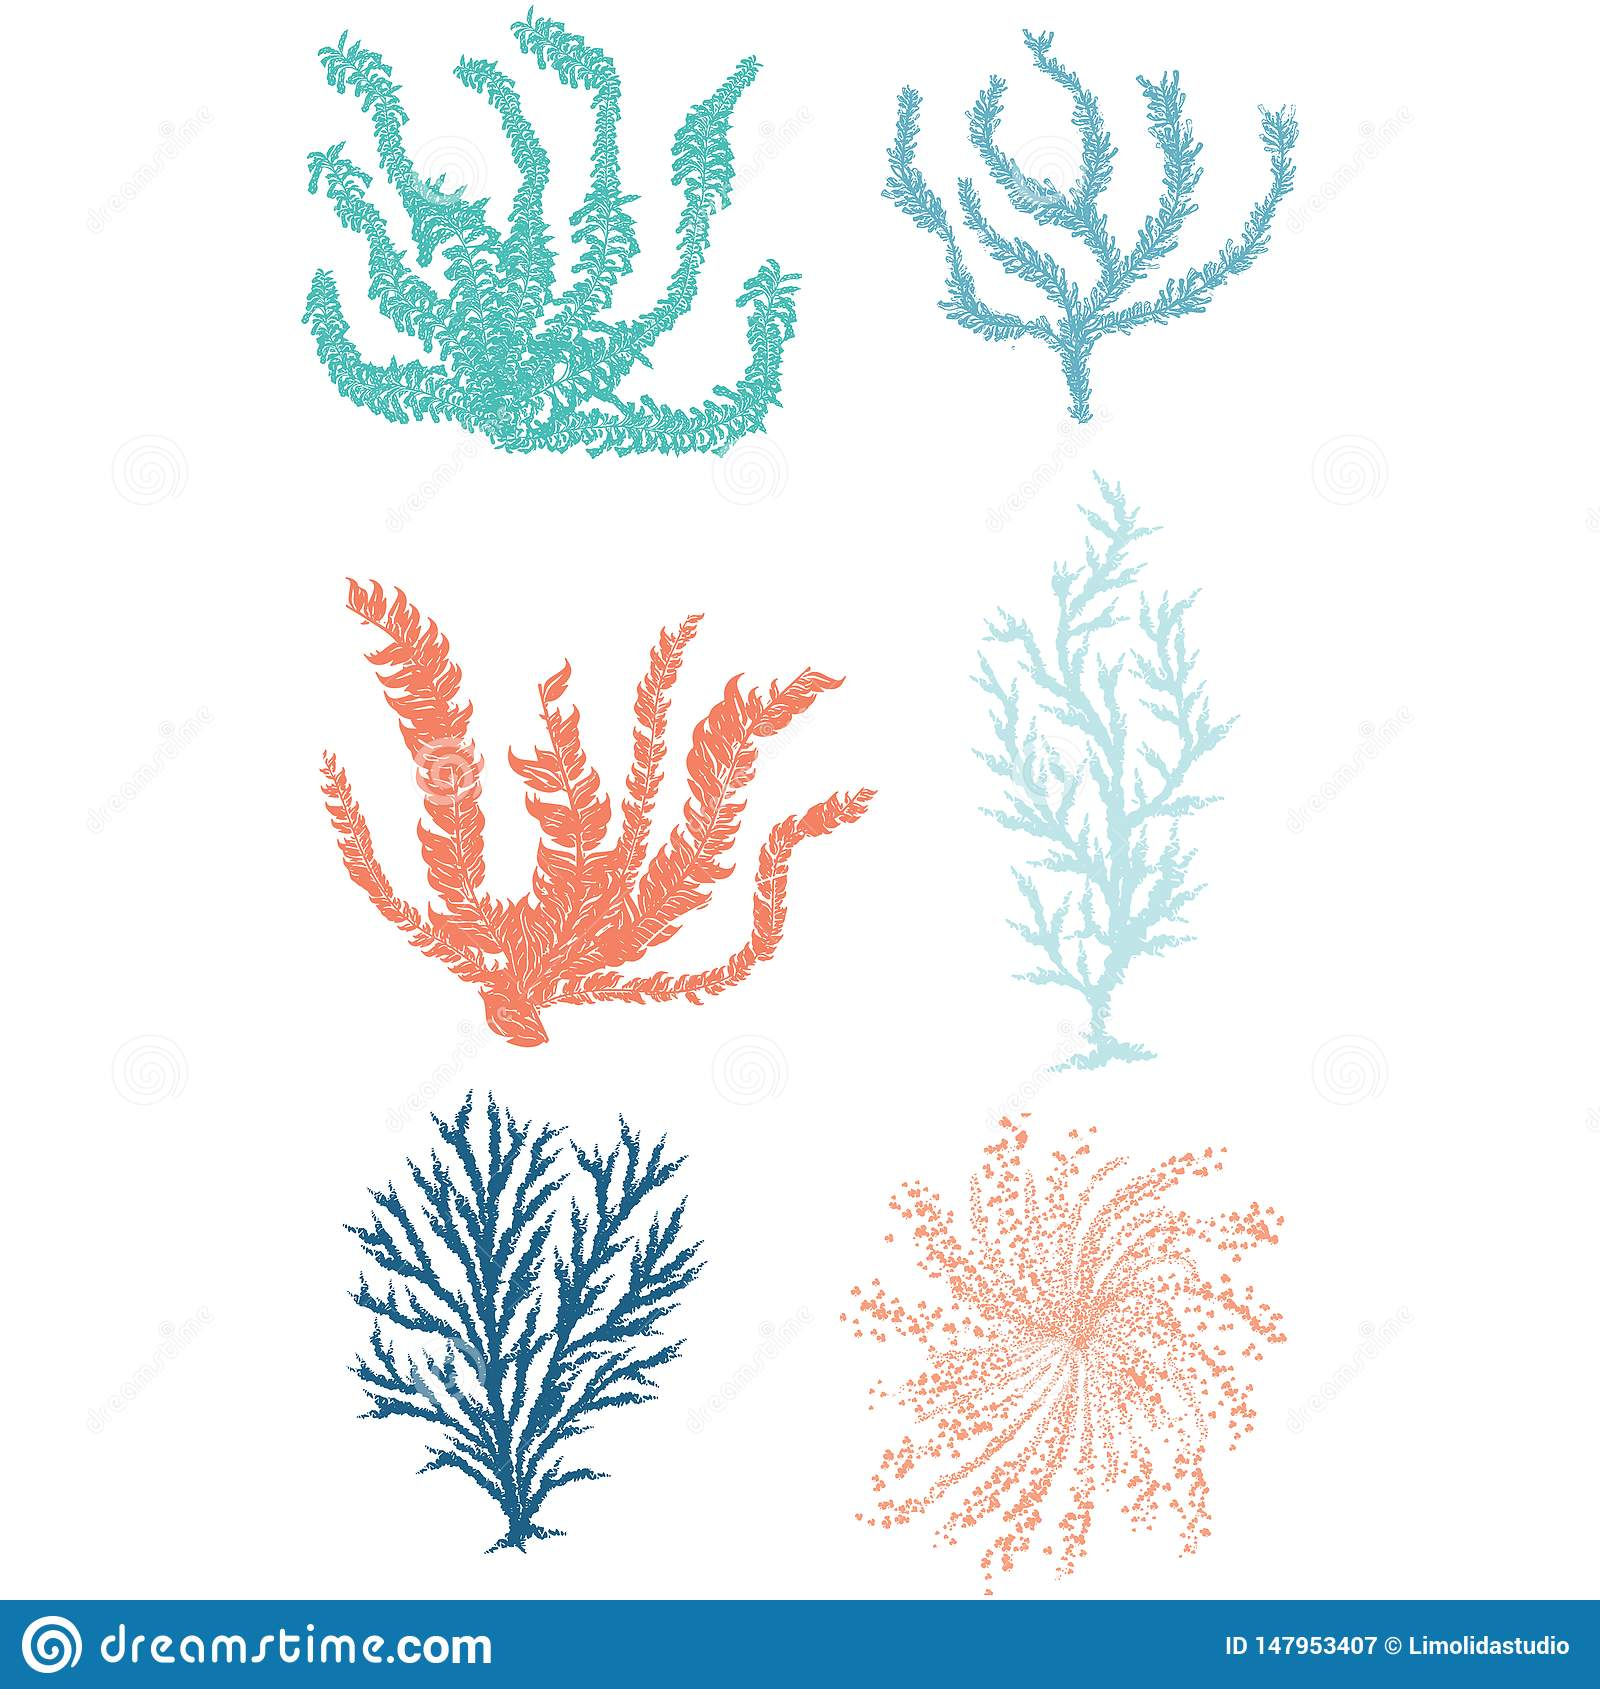 Cute underwater seaweed cartoon vector illustration motif set. Hand drawn isolated coral reef elements clipart for nautical